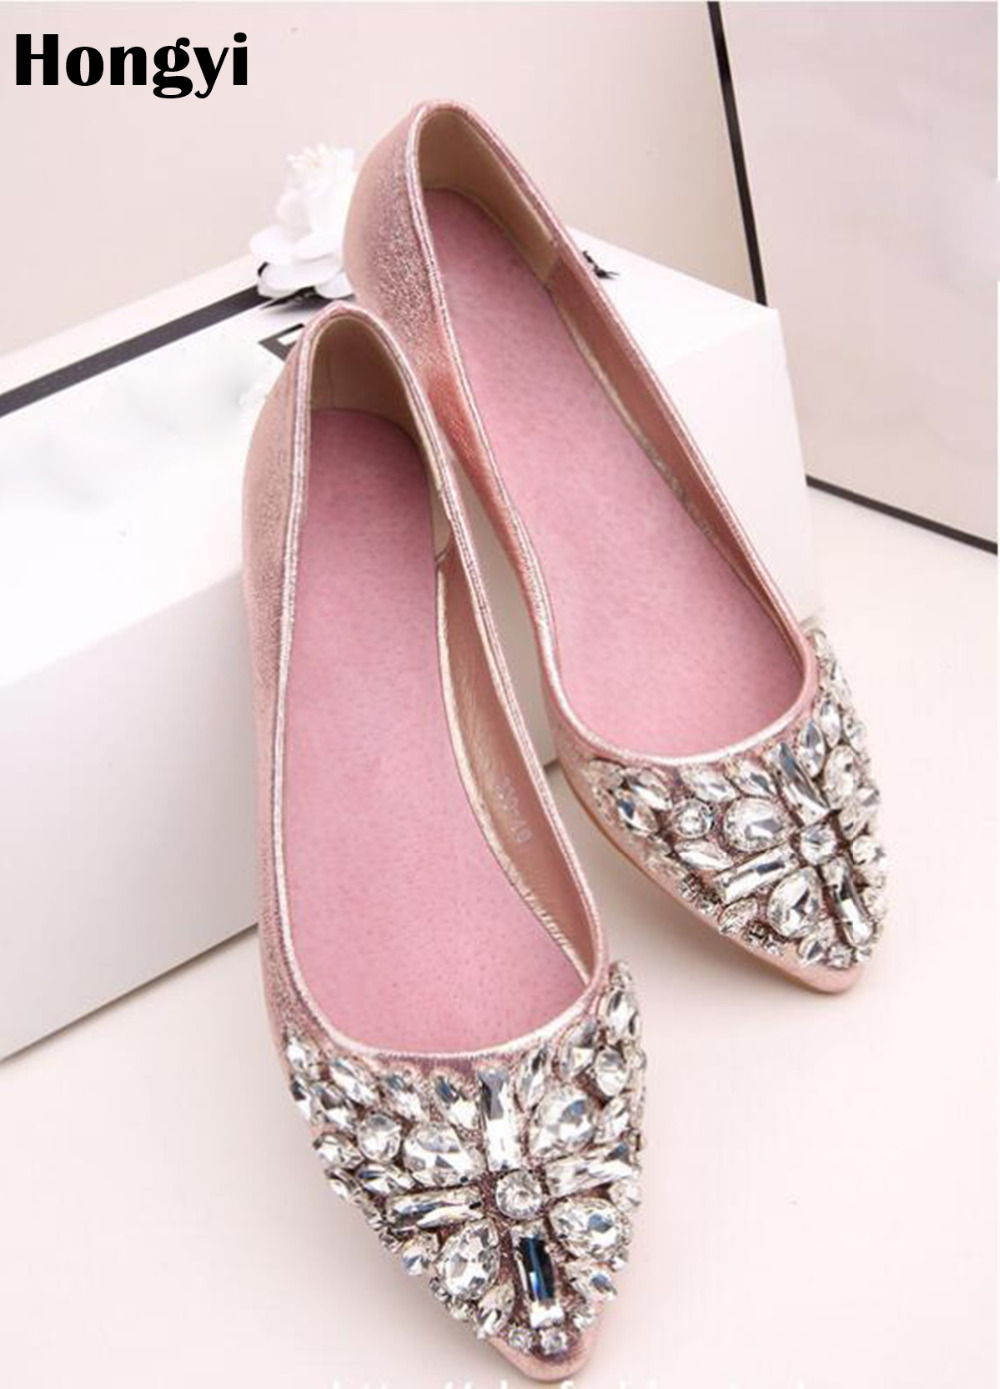 5b68f822b Hongyi New Cheap Price Pu leather pointed toe Rhinestone shoes women  comfortable Crystal flats Loafers Daily Casual Shoes